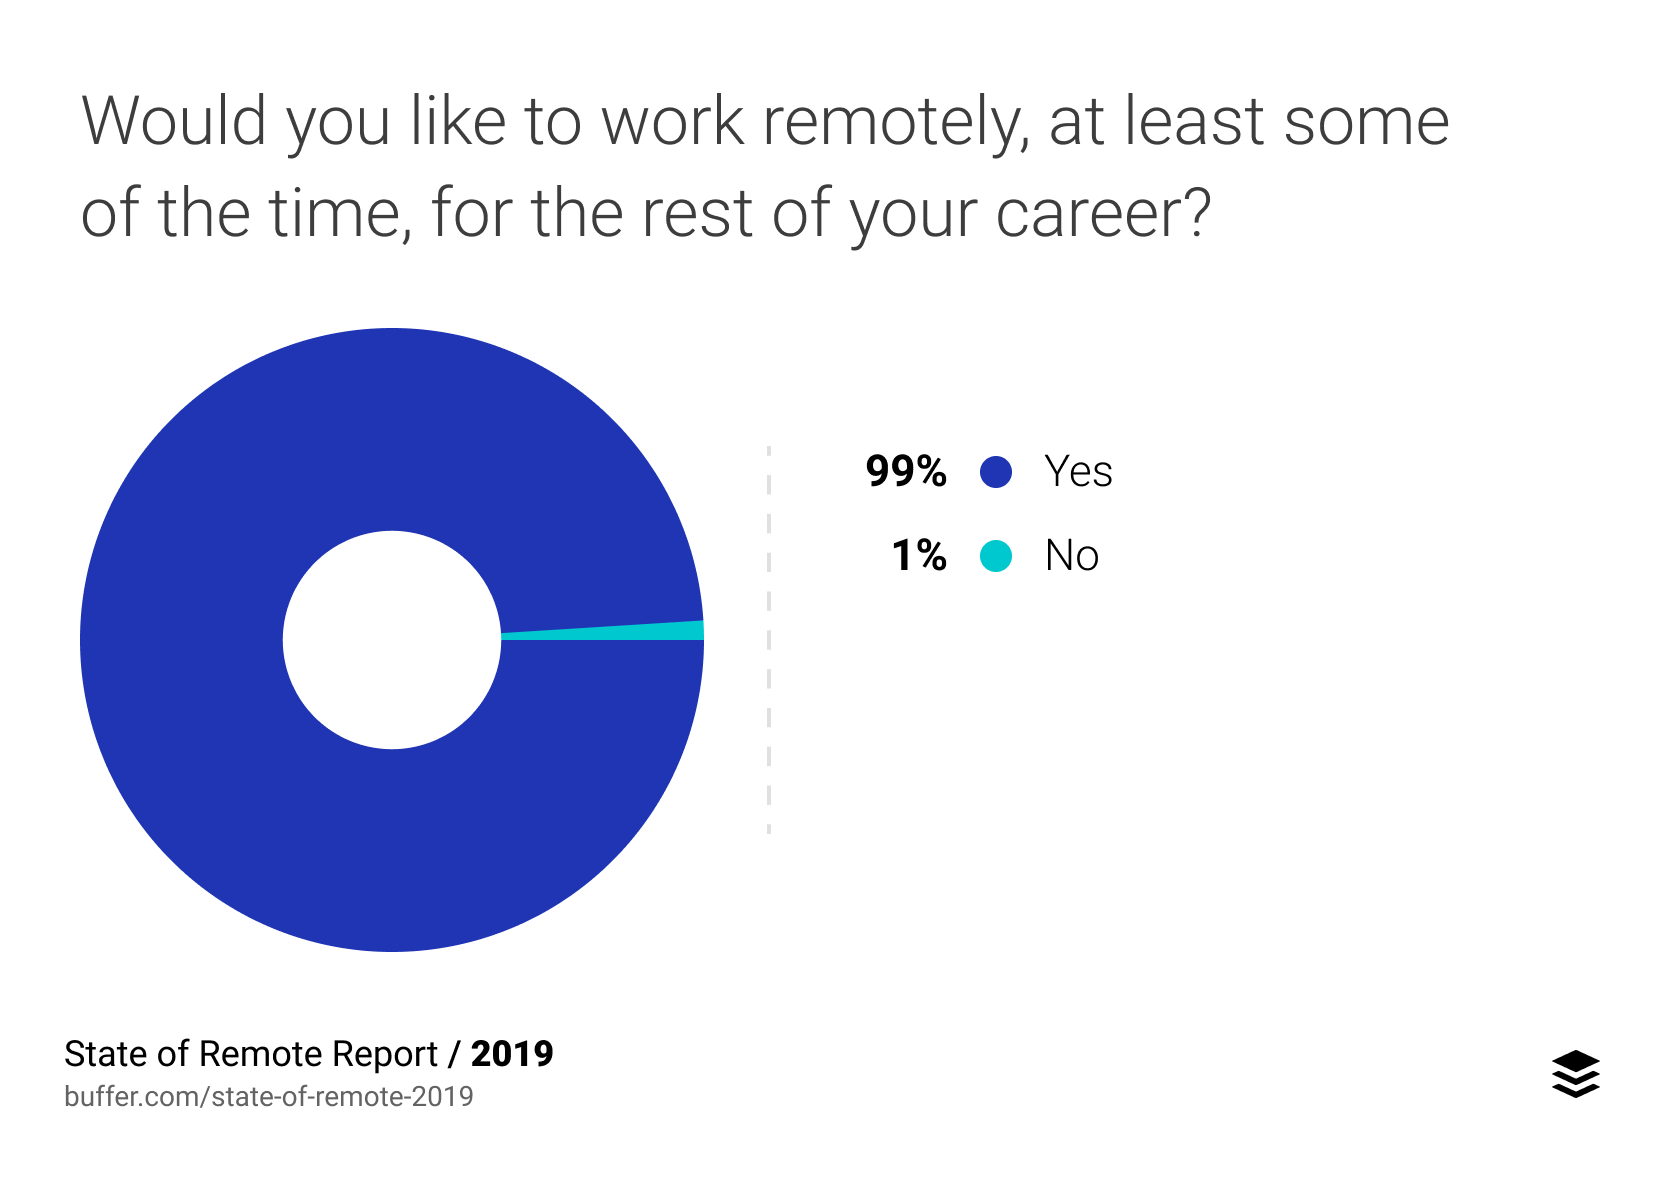 99% of people would like to work remotely